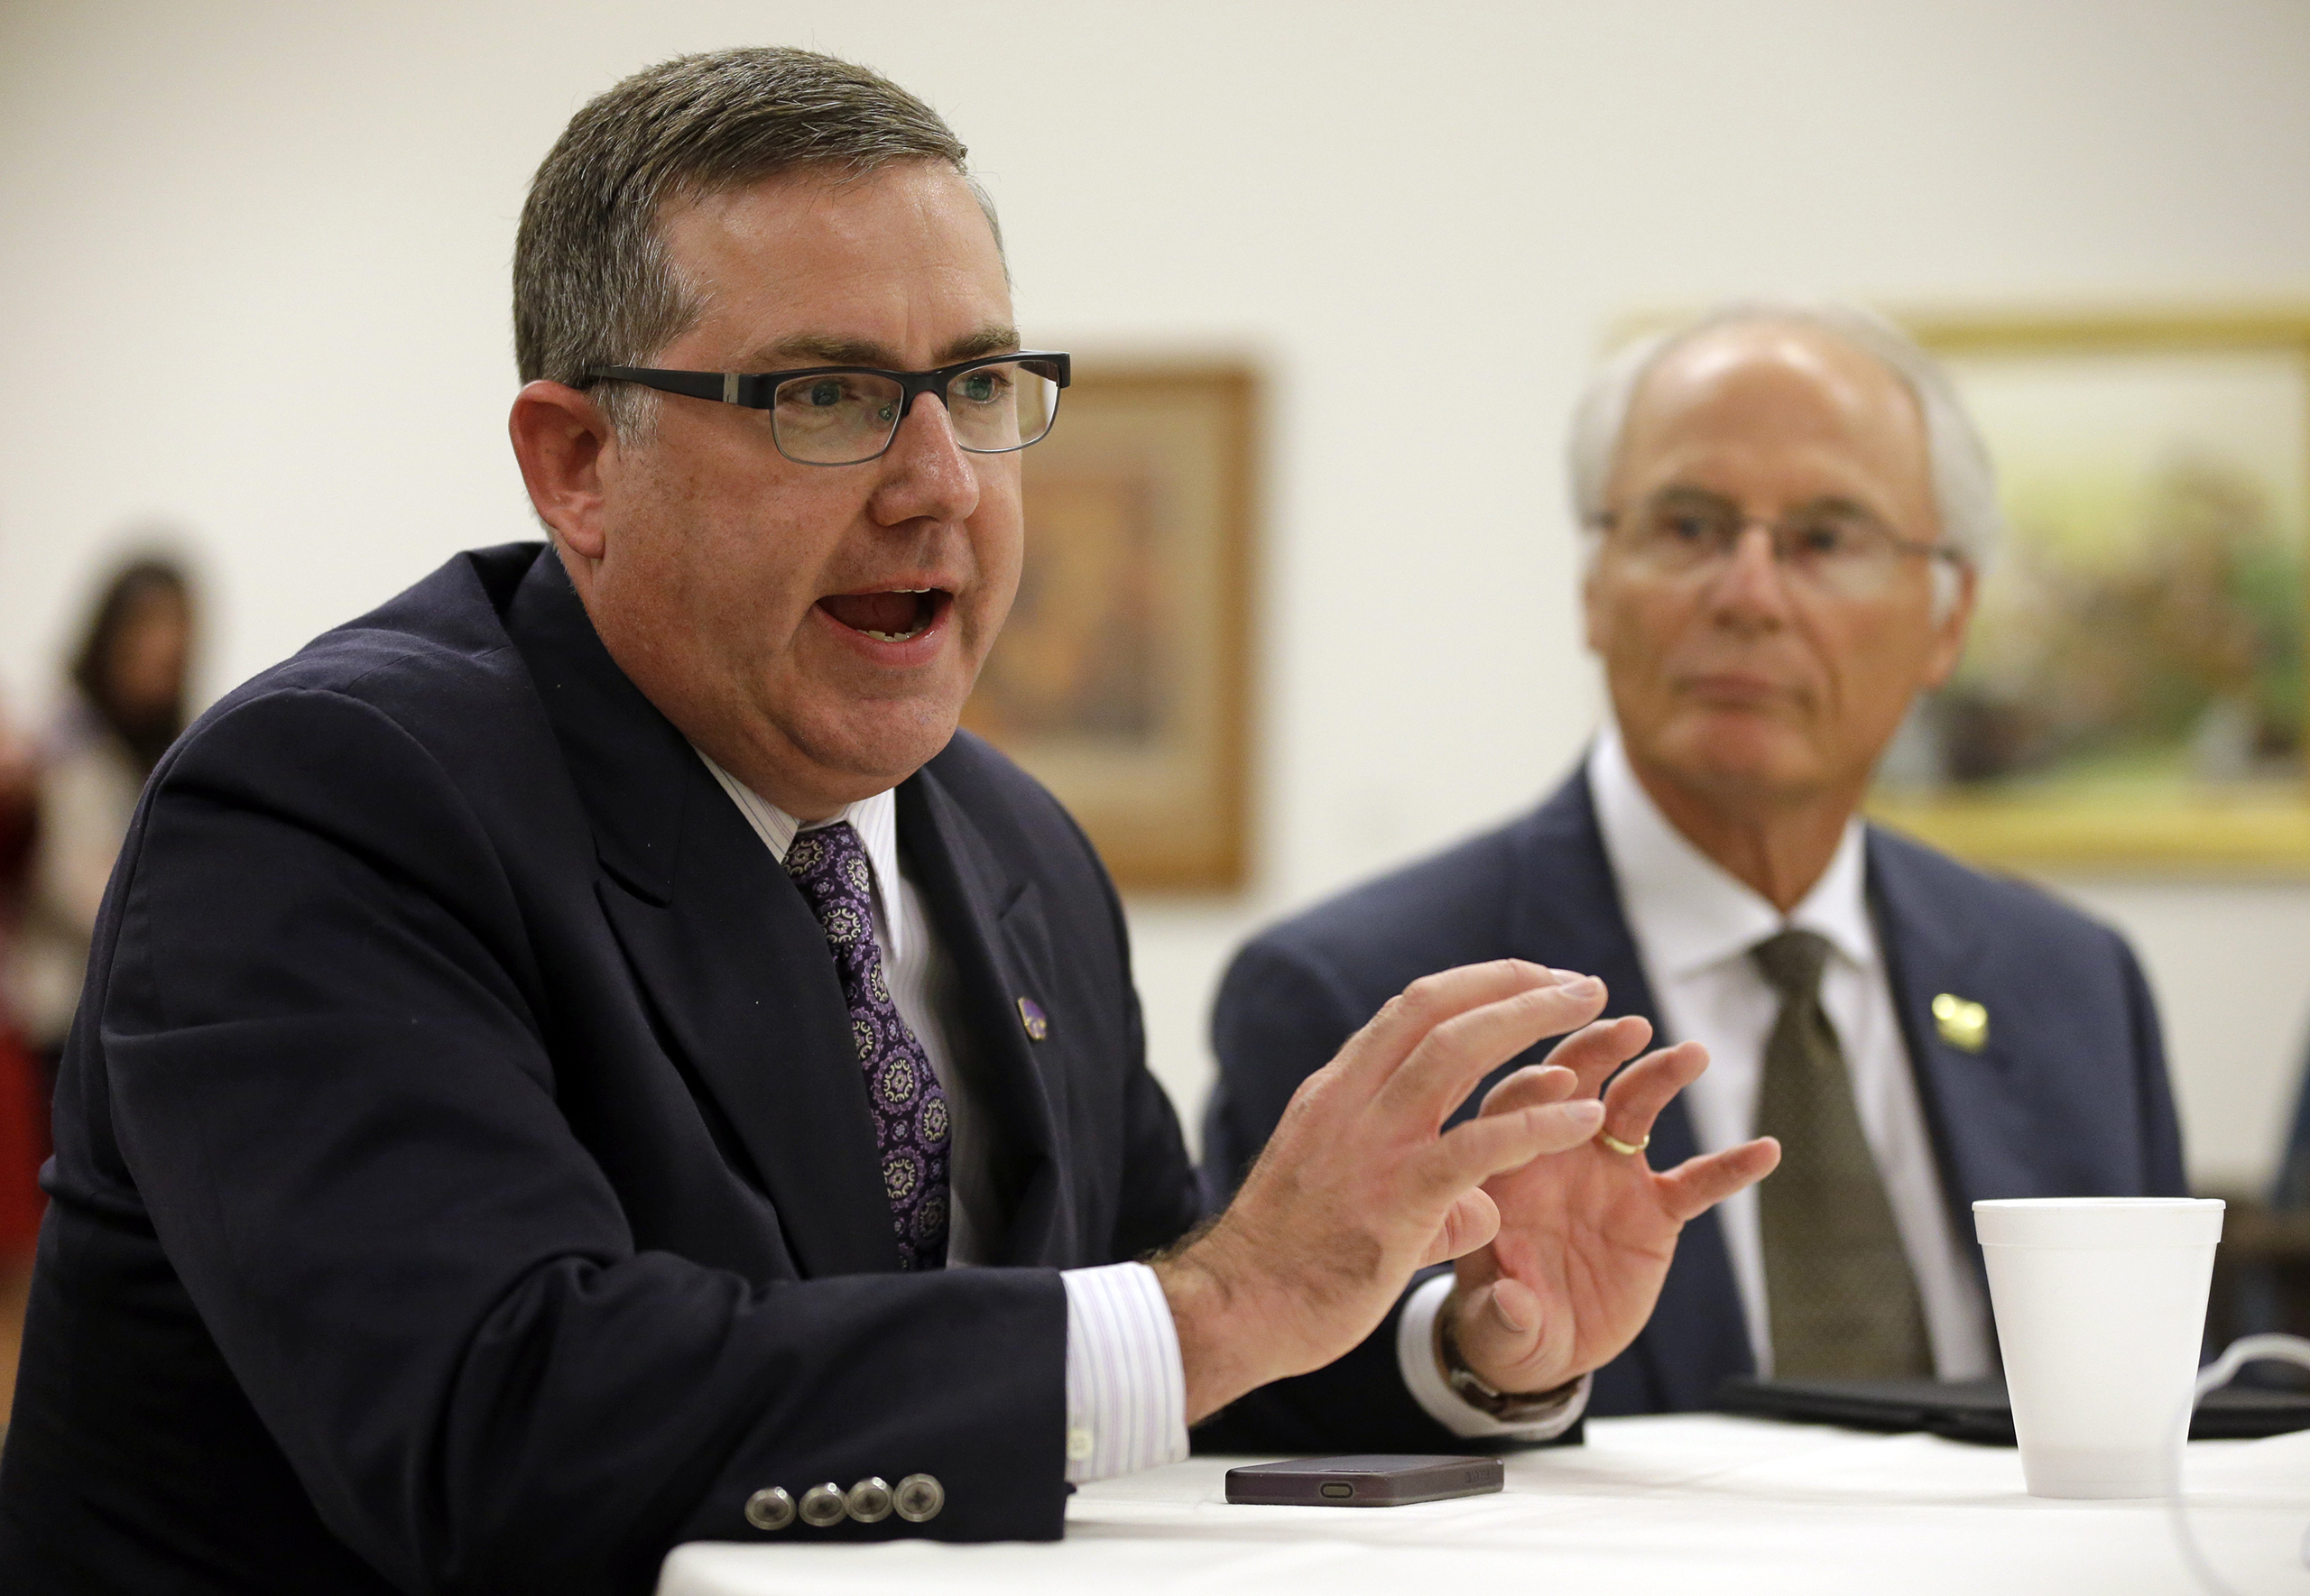 Wright State University president David R. Hopkins at NCAA headquarters in Indianapolis, Aug. 7, 2014.